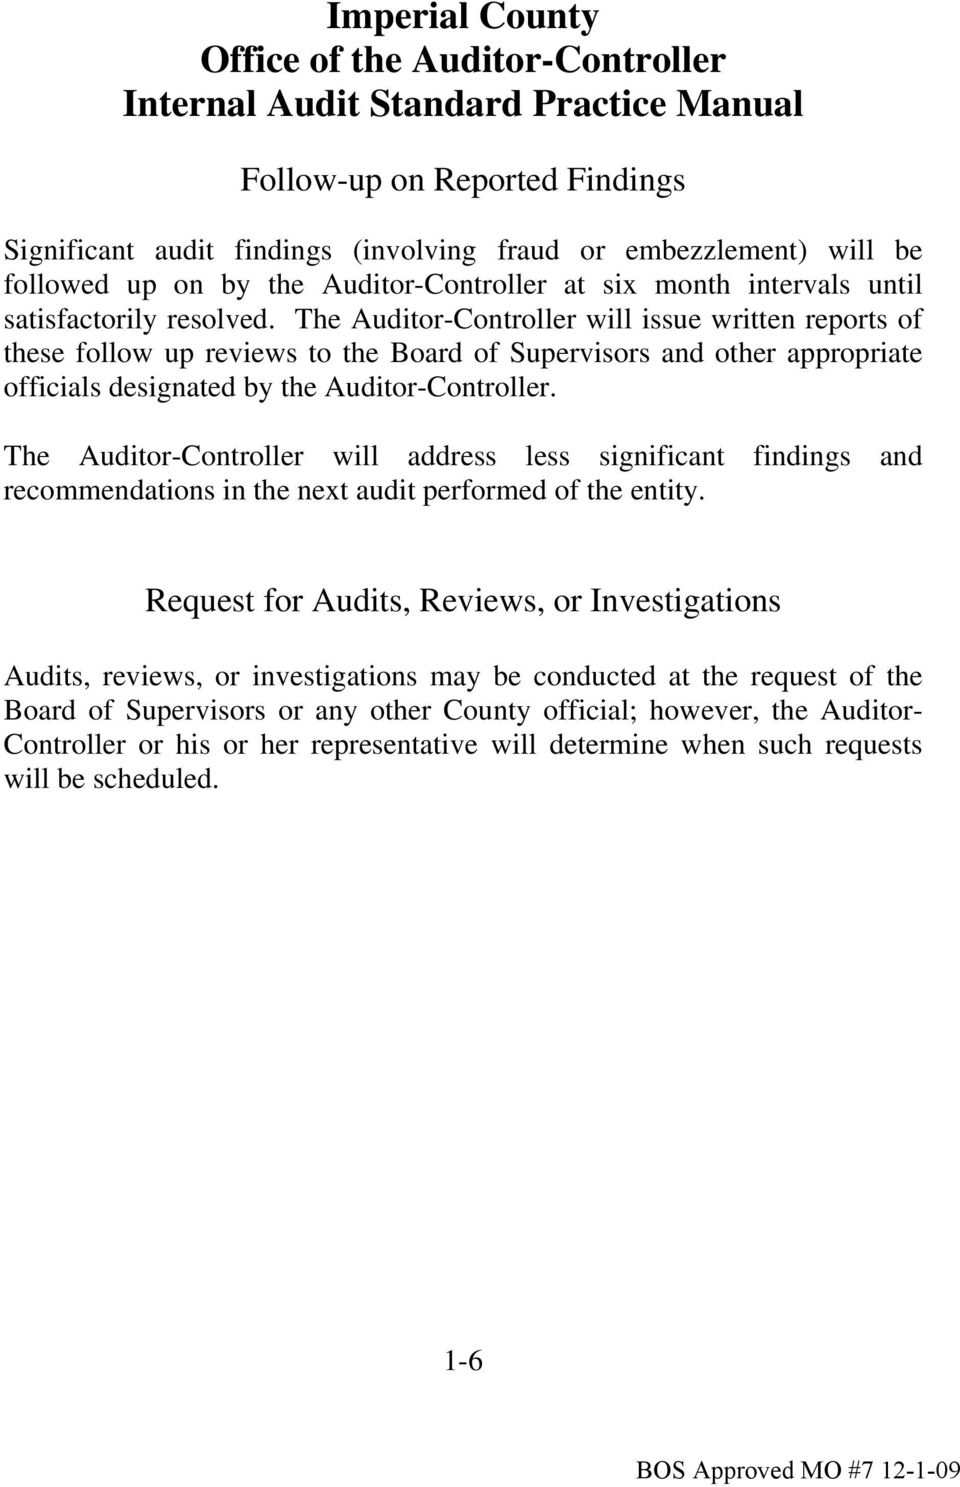 The Auditor-Controller will issue written reports of these follow up reviews to the Board of Supervisors and other appropriate officials designated by the Auditor-Controller.